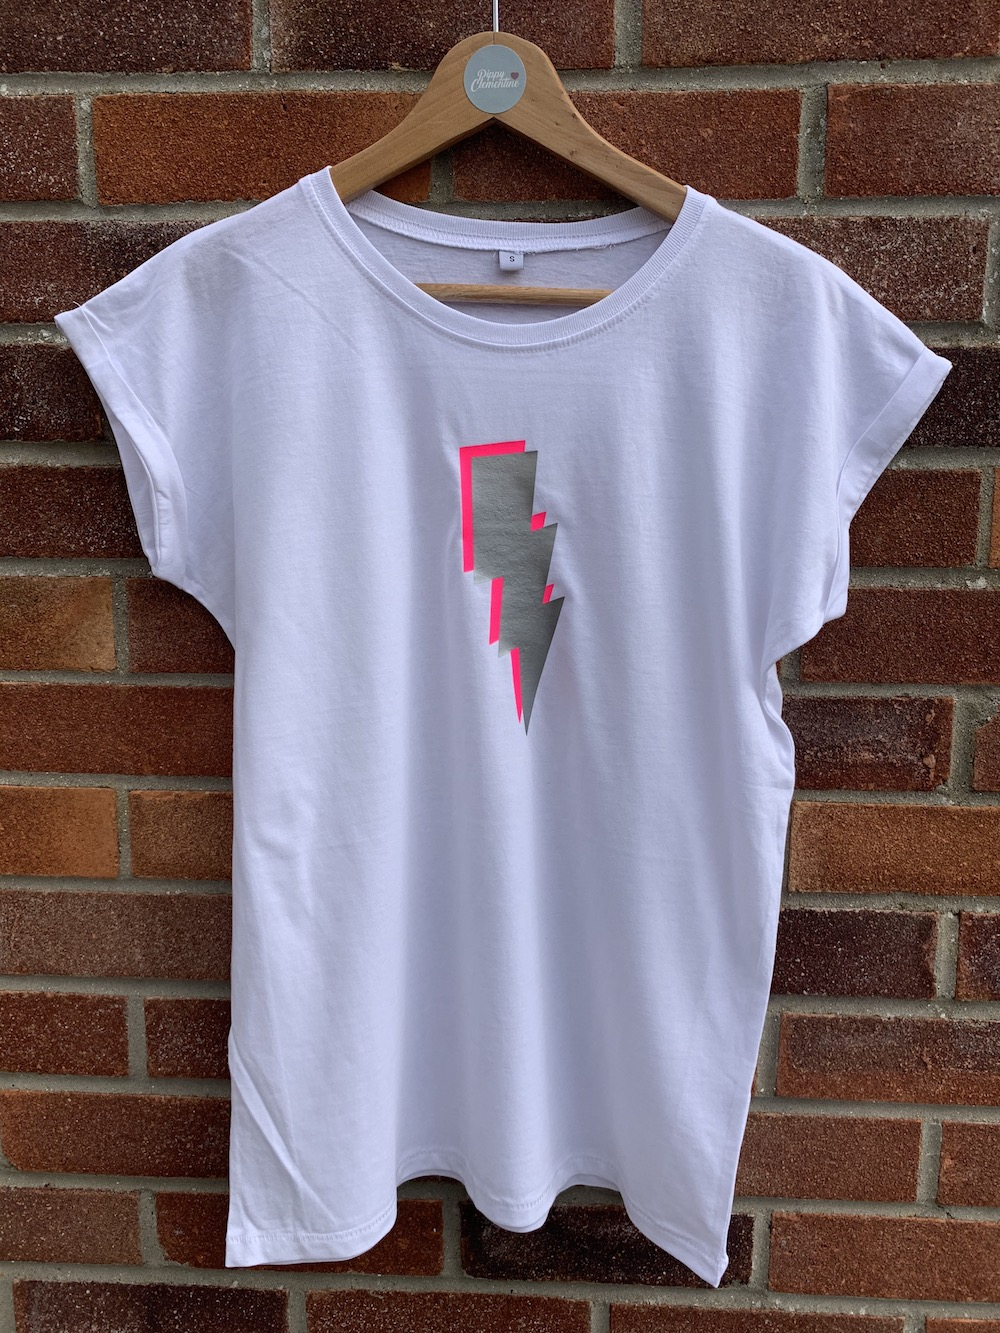 Lightening Bolt Tshirt – White, Neon Pink And Silver